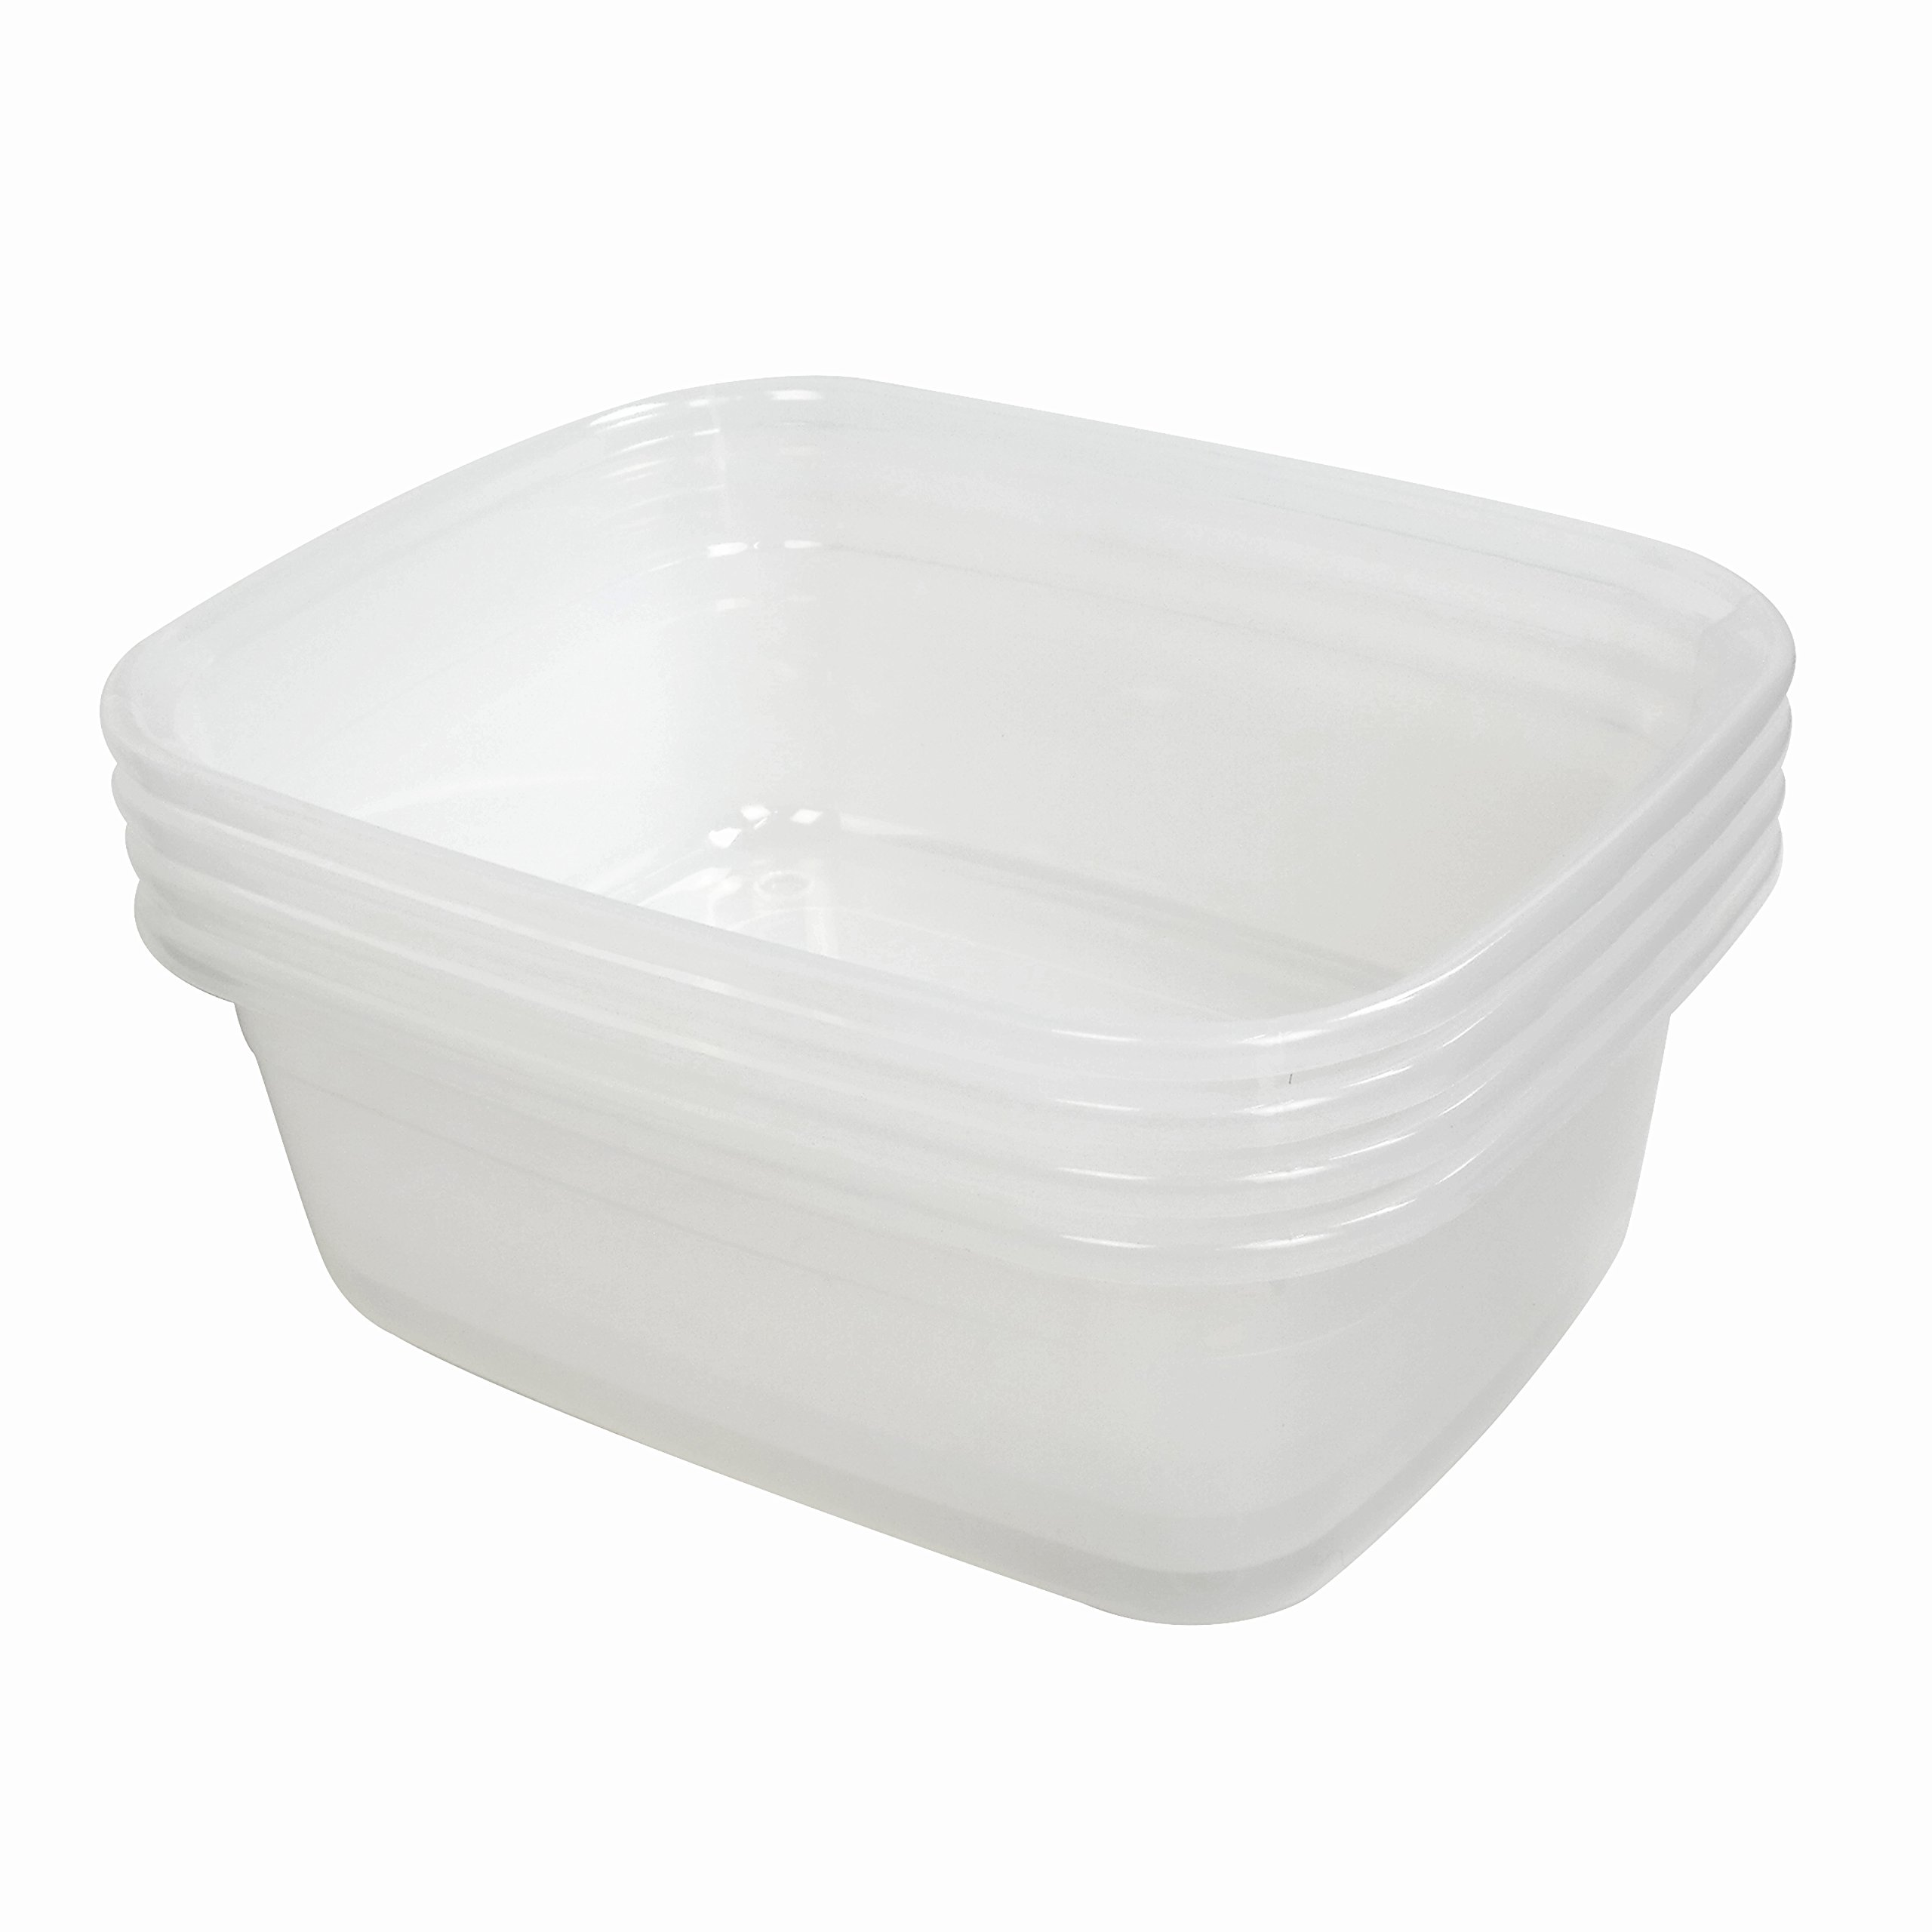 Ramddy Clear 14 Quart Dish Pans, 15.16'' by 12'' by 5.7'', Set of 4